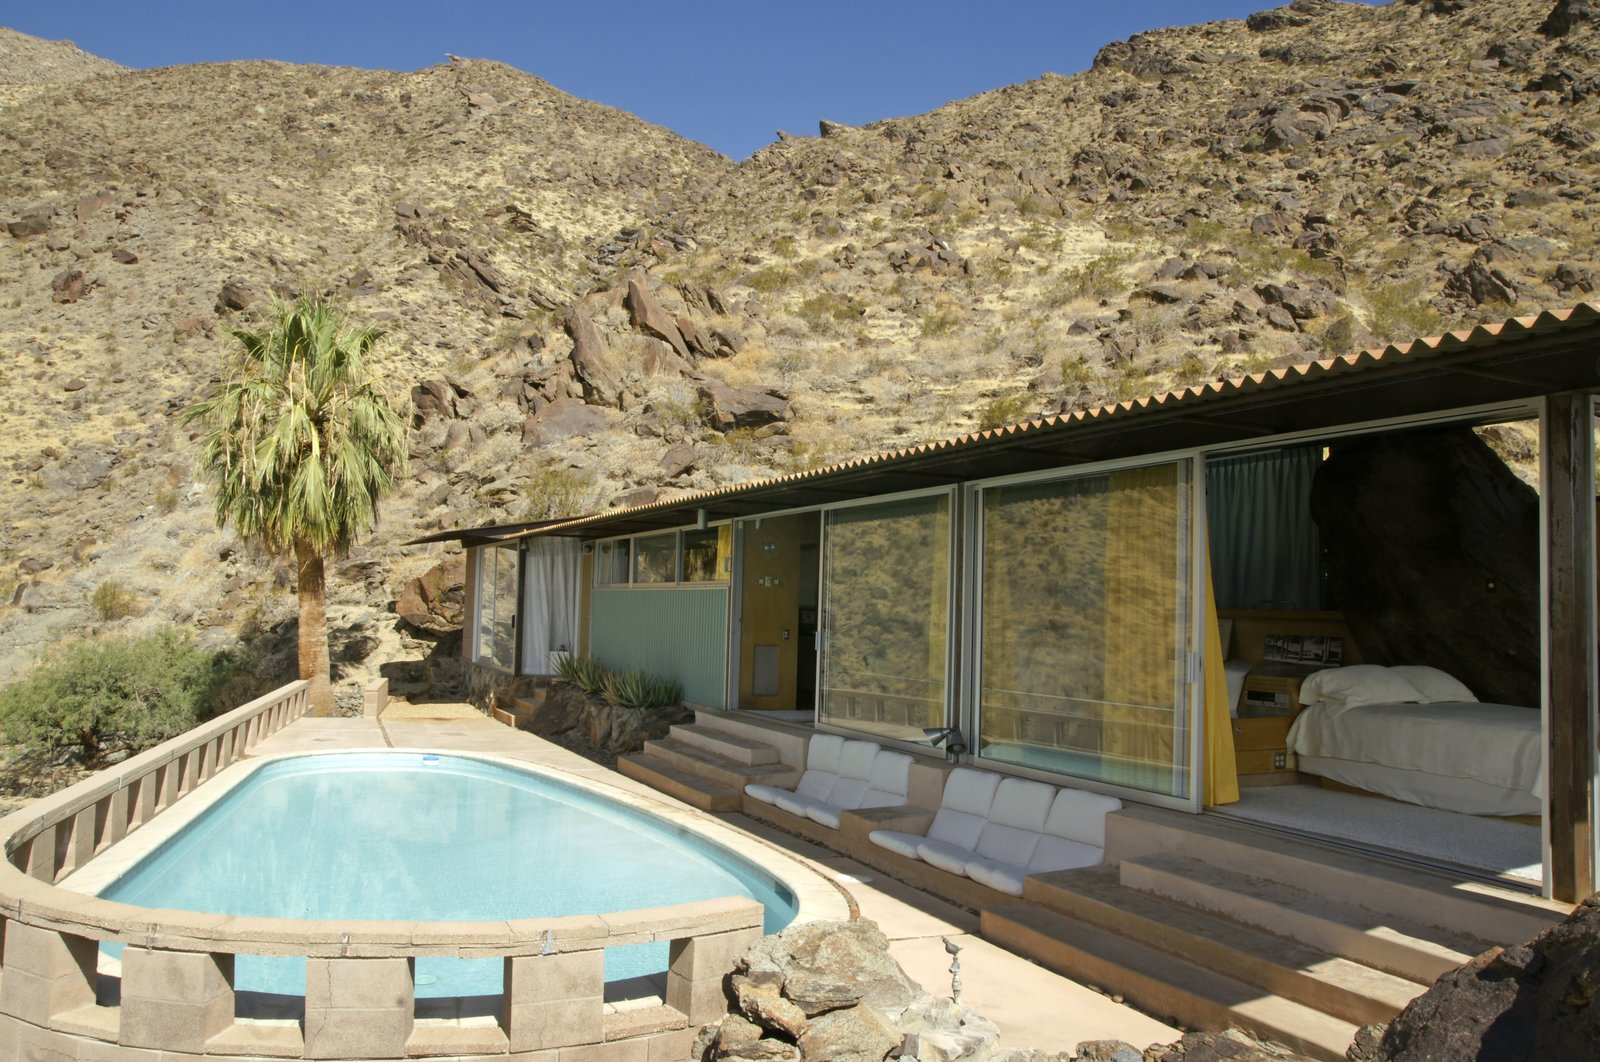 Outdoor, Swimming, Stone, Desert, Boulders, and Trees Frey House II  Best Outdoor Boulders Desert Photos from 10 Things You Shouldn't Miss at Modernism Week in Palm Springs